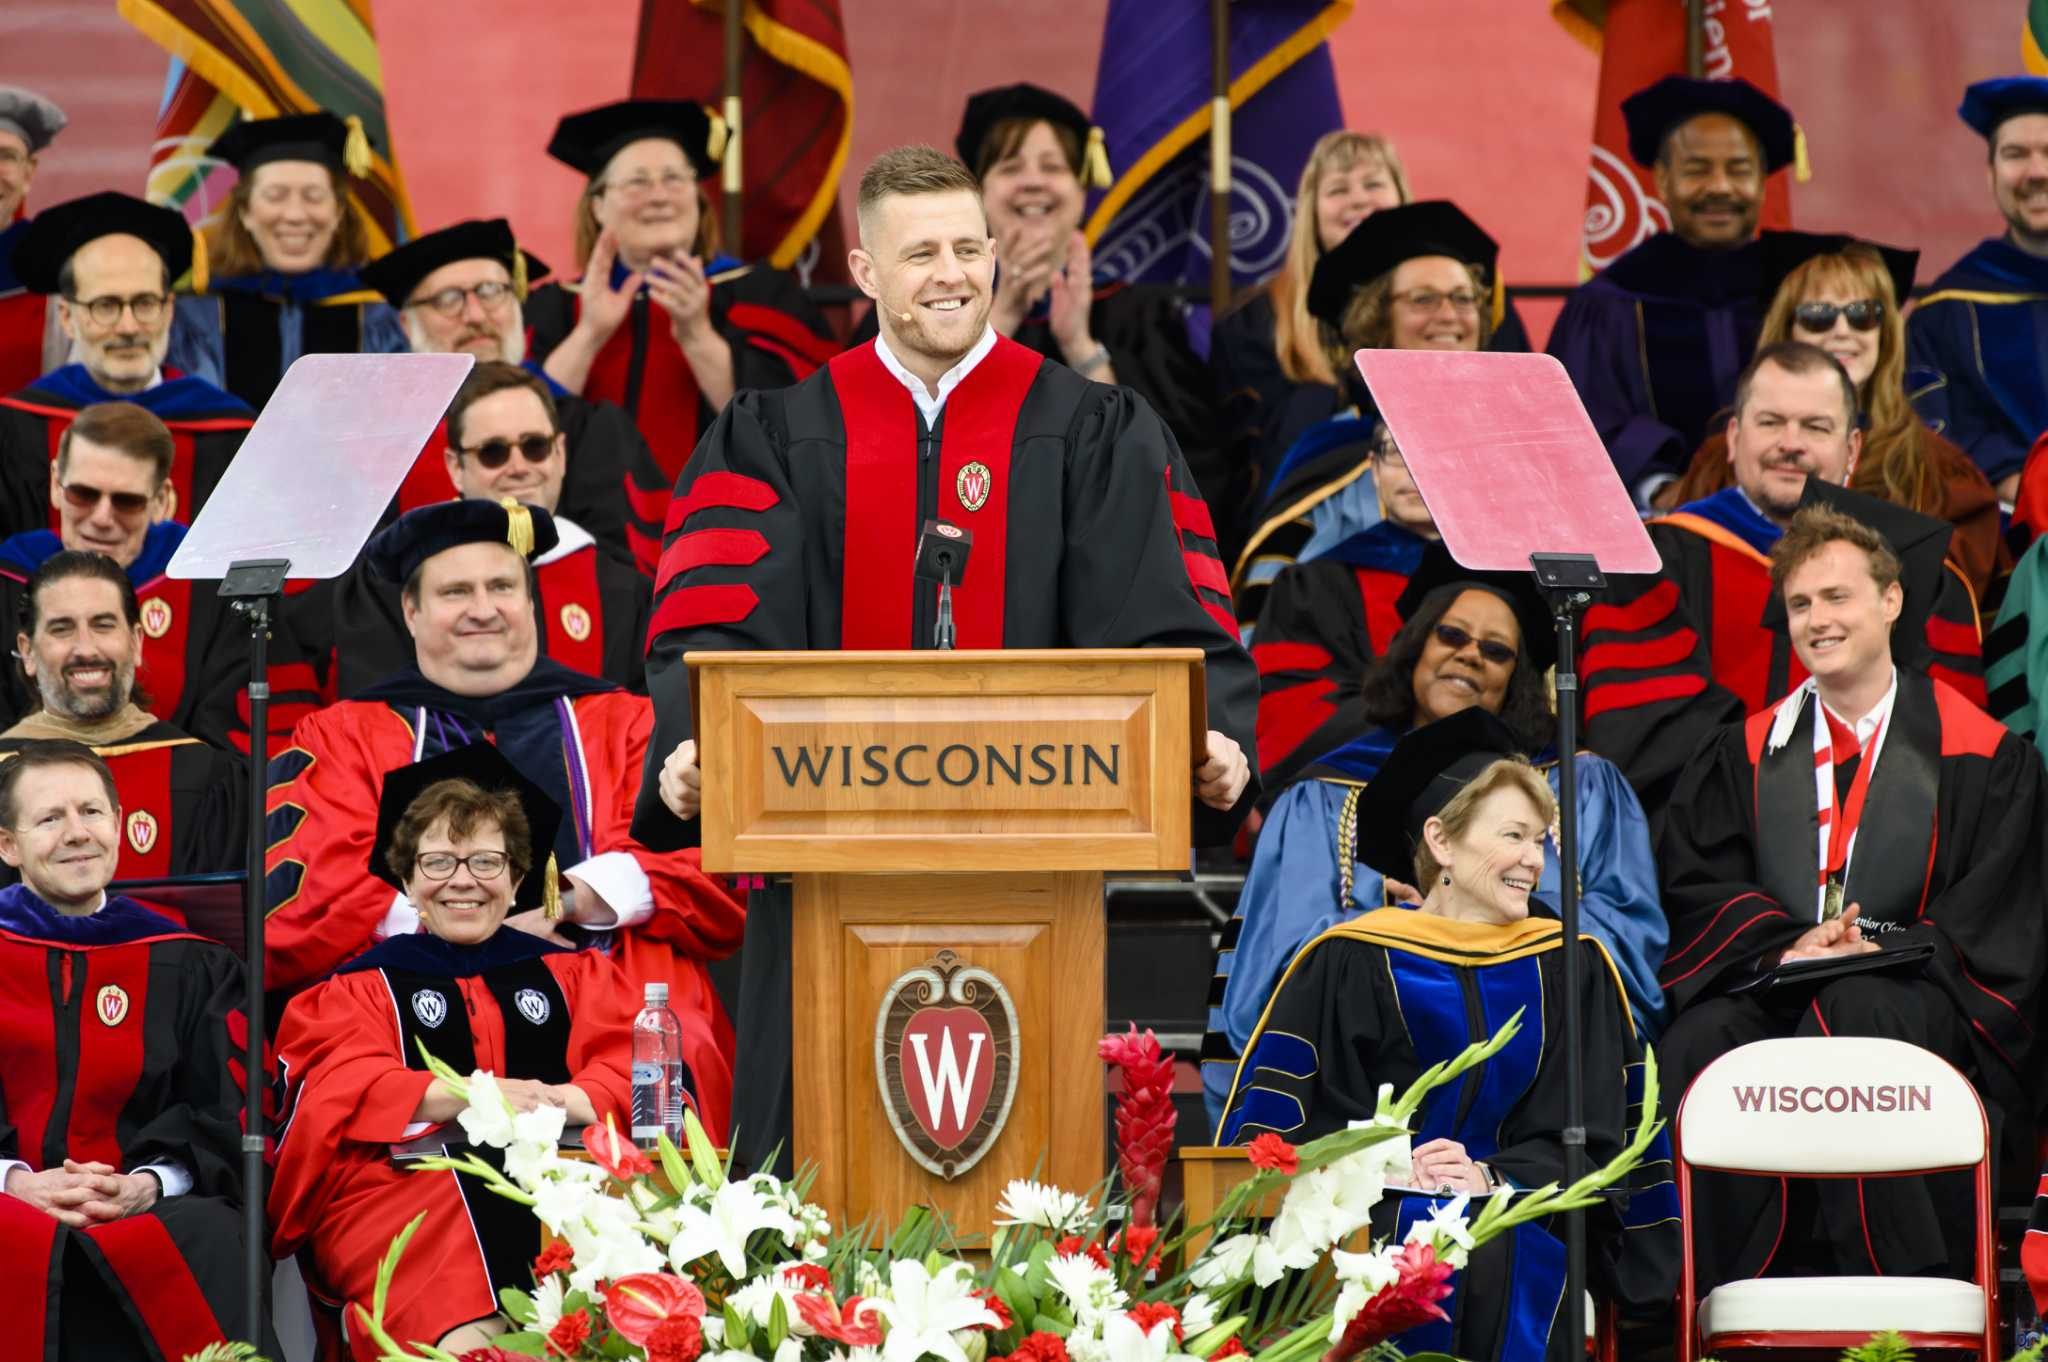 Highlights from J.J. Watt's Wisconsin commencement speech